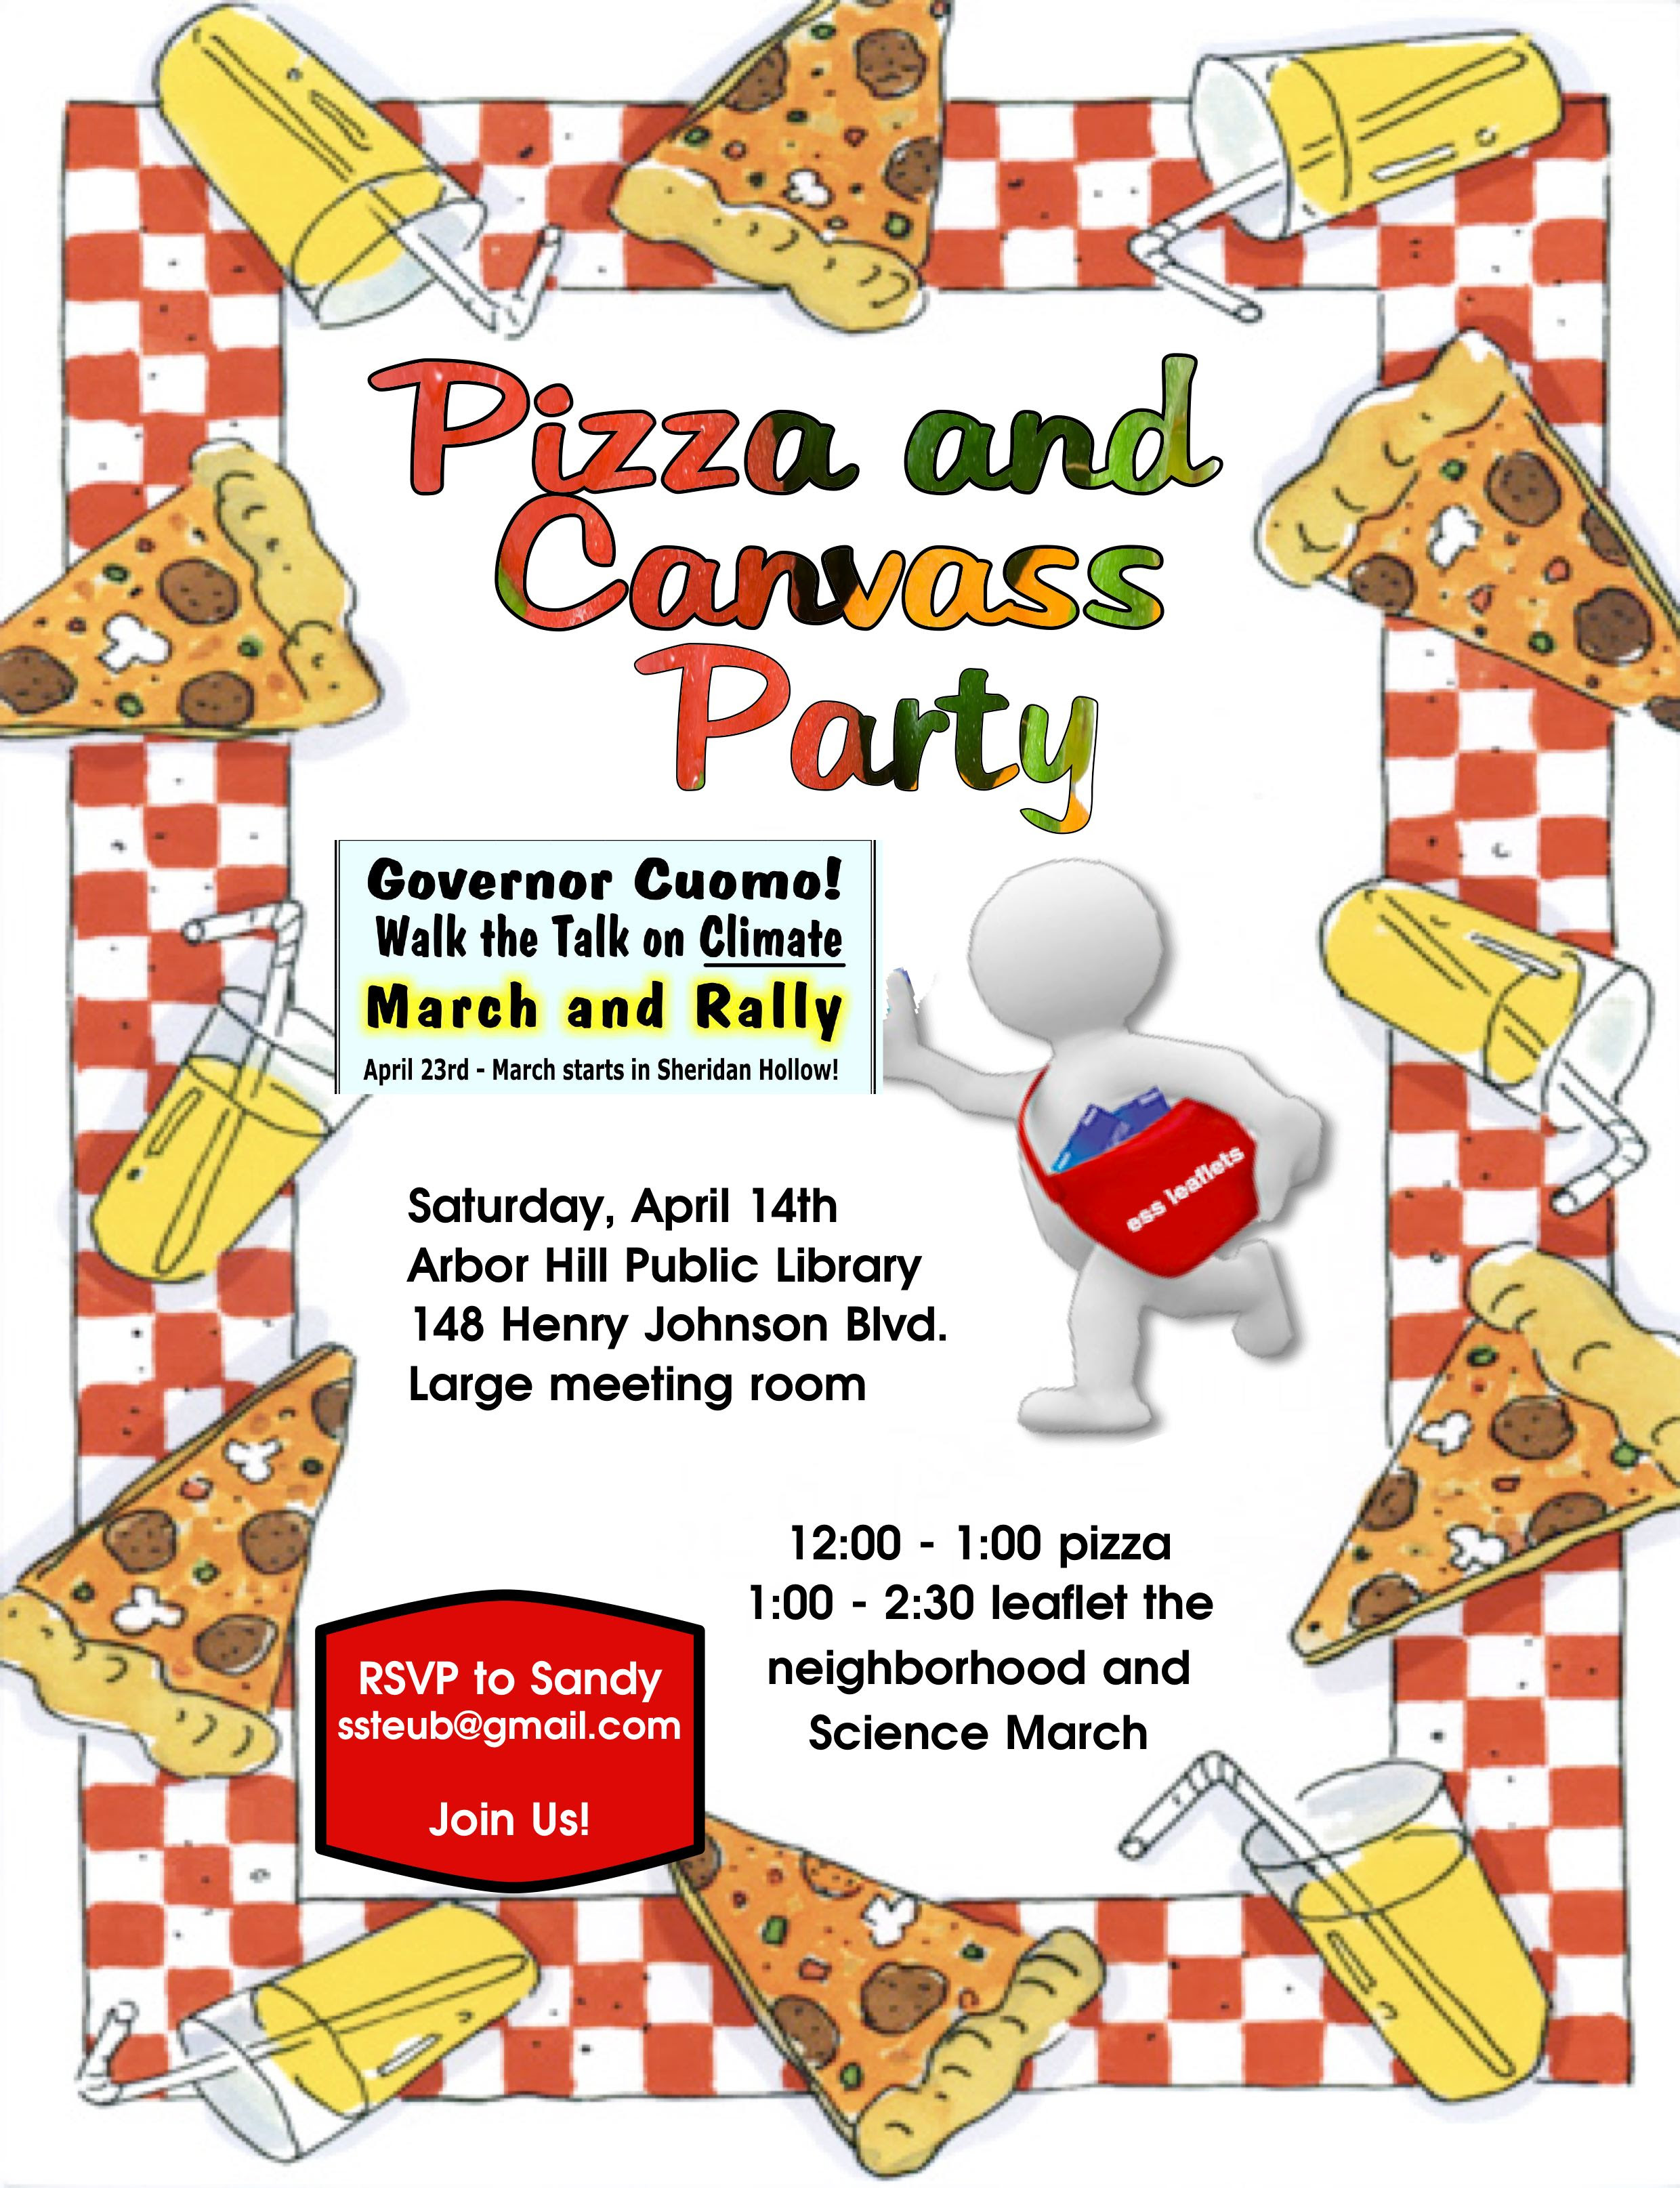 Pizza_And_Canvass_Party.jpg